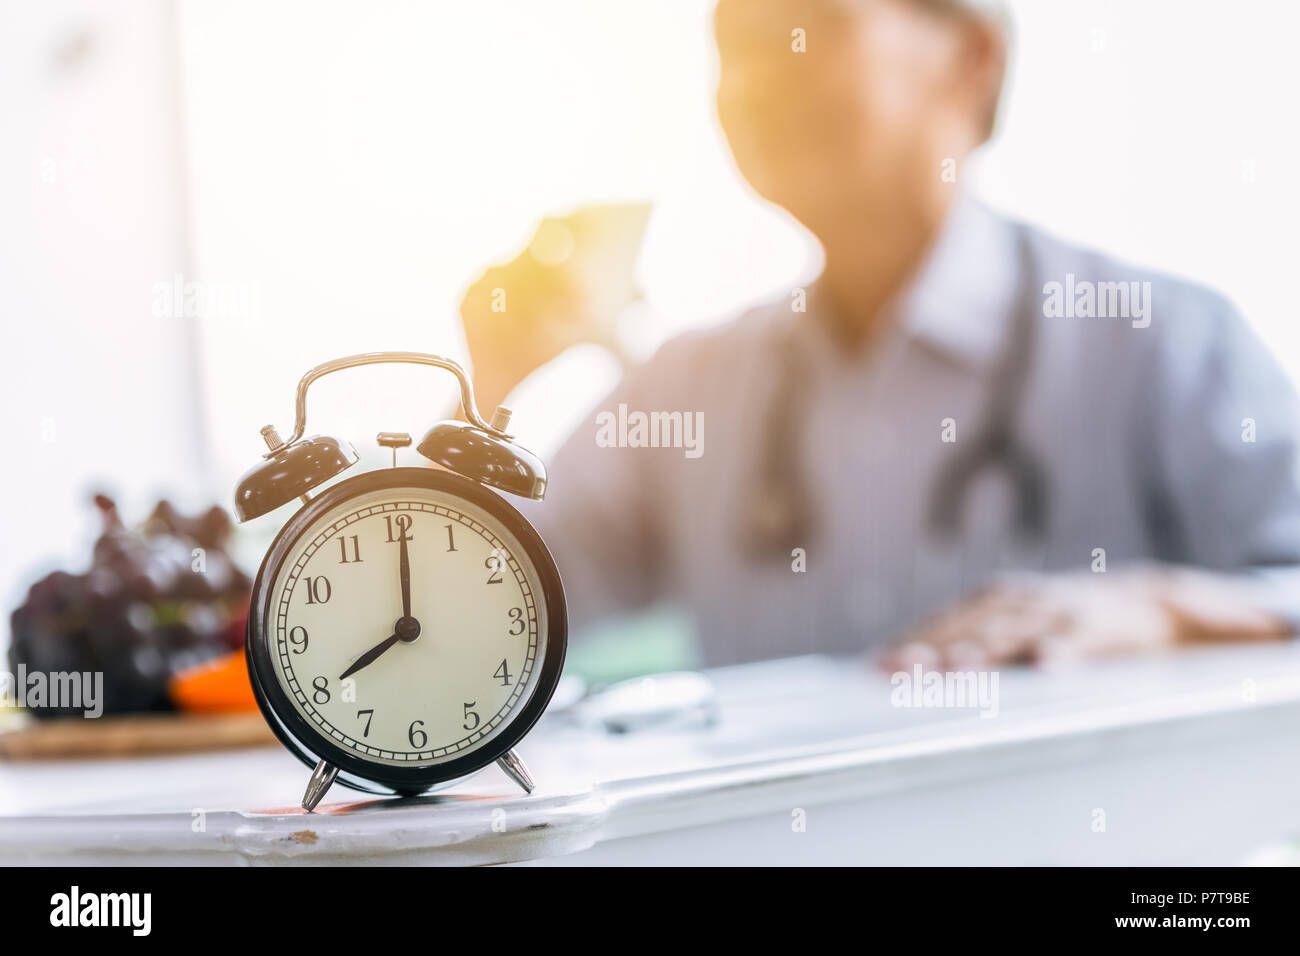 Clock on doctor clinic table for times to healthcare checkup time appointment concept. Stock Photo